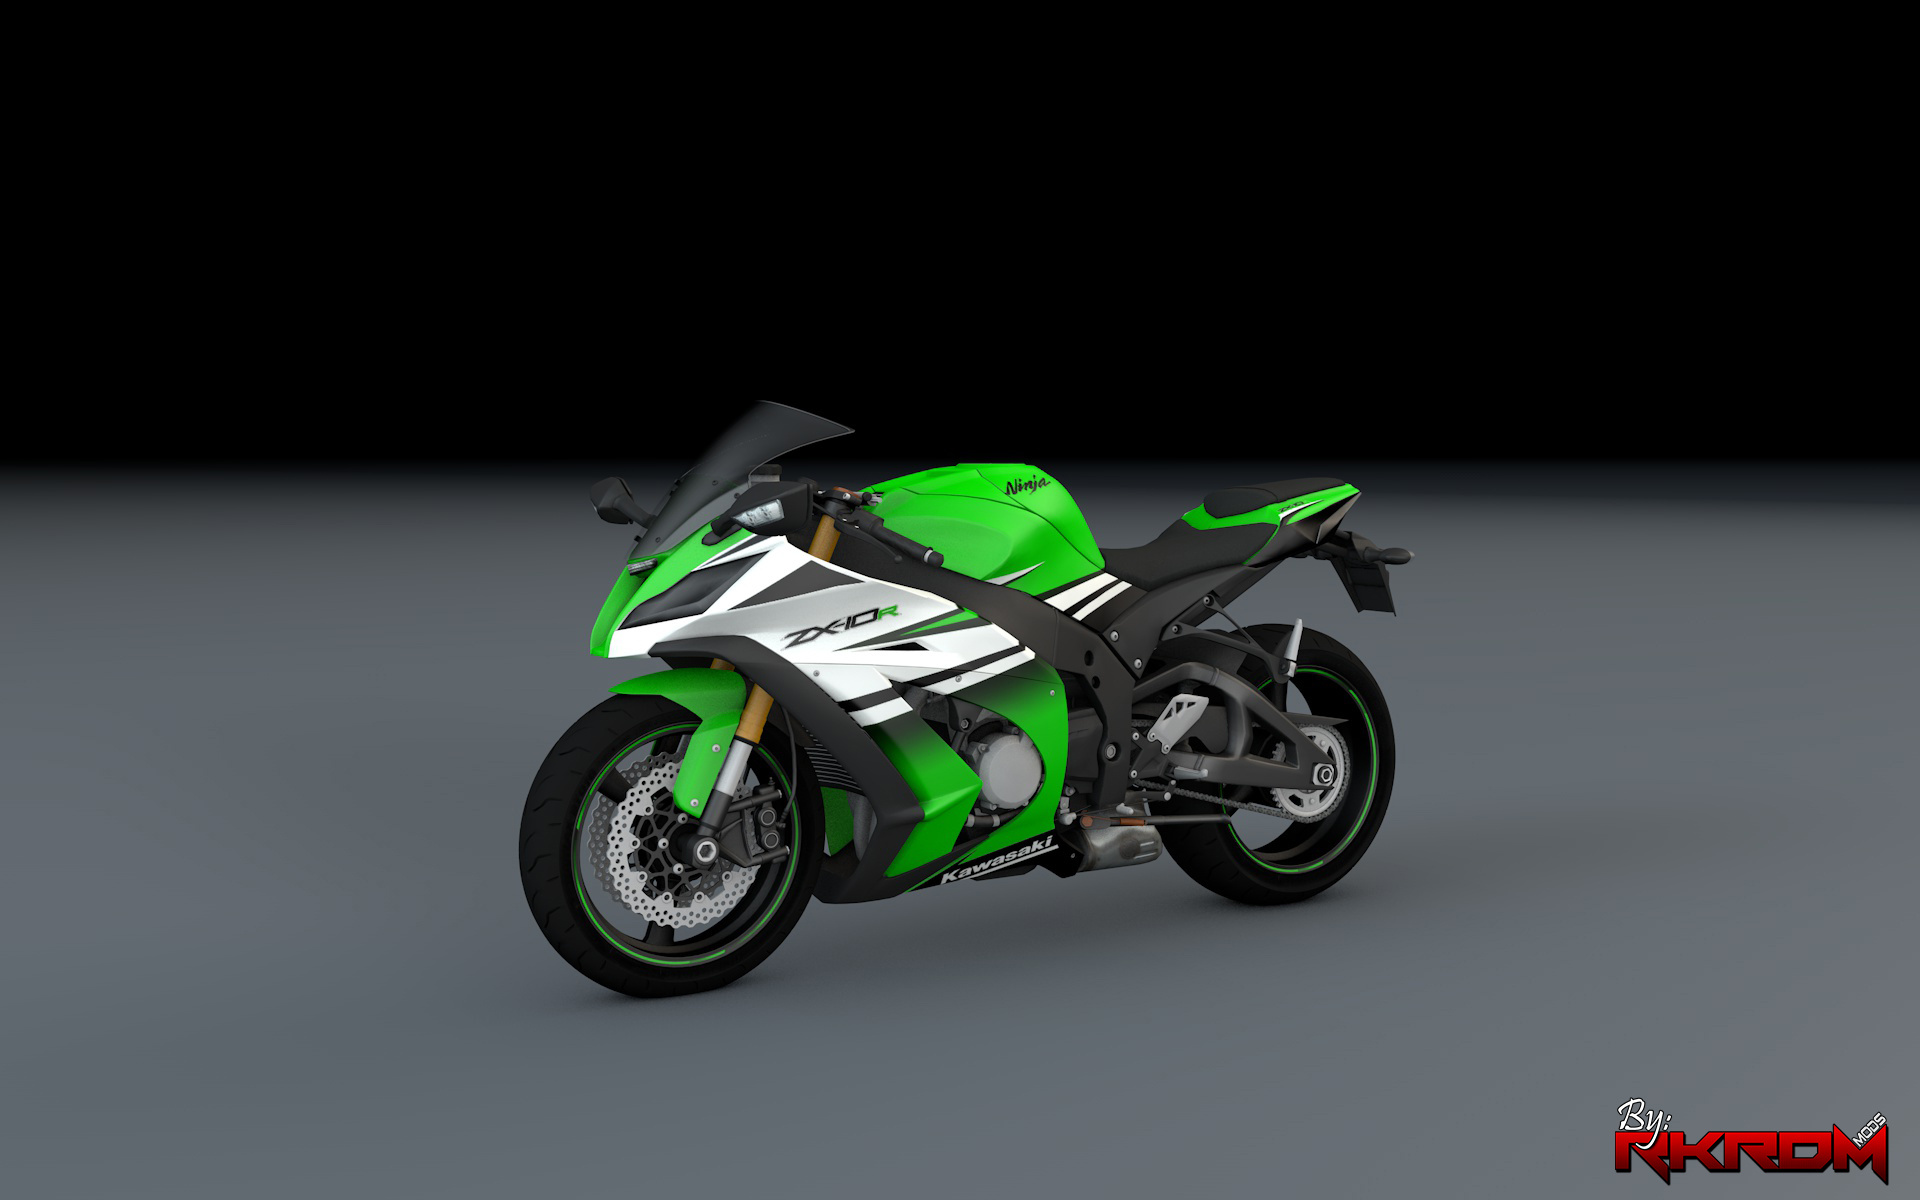 2015 Kawasaki Ninja Zx 10r Add On Gta5 Modscom